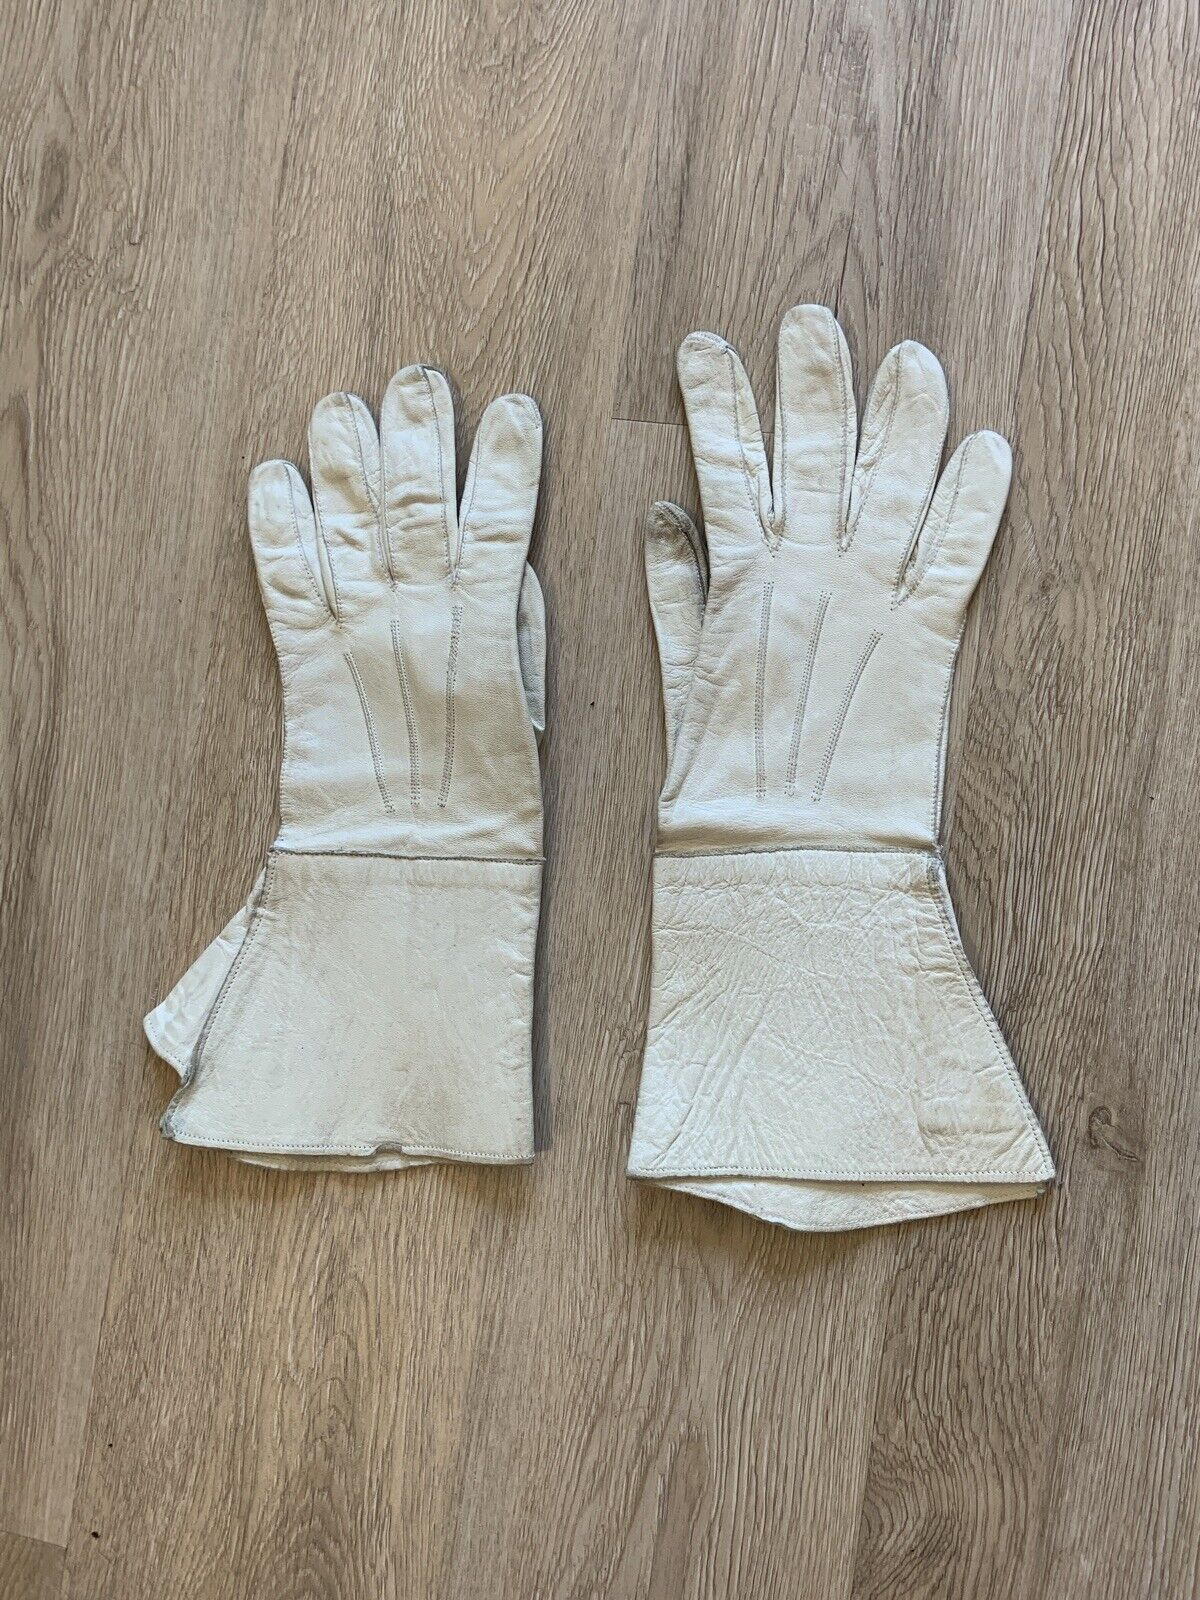 Vintage Early 20th Century French GAUNTLET GLOVES… - image 3